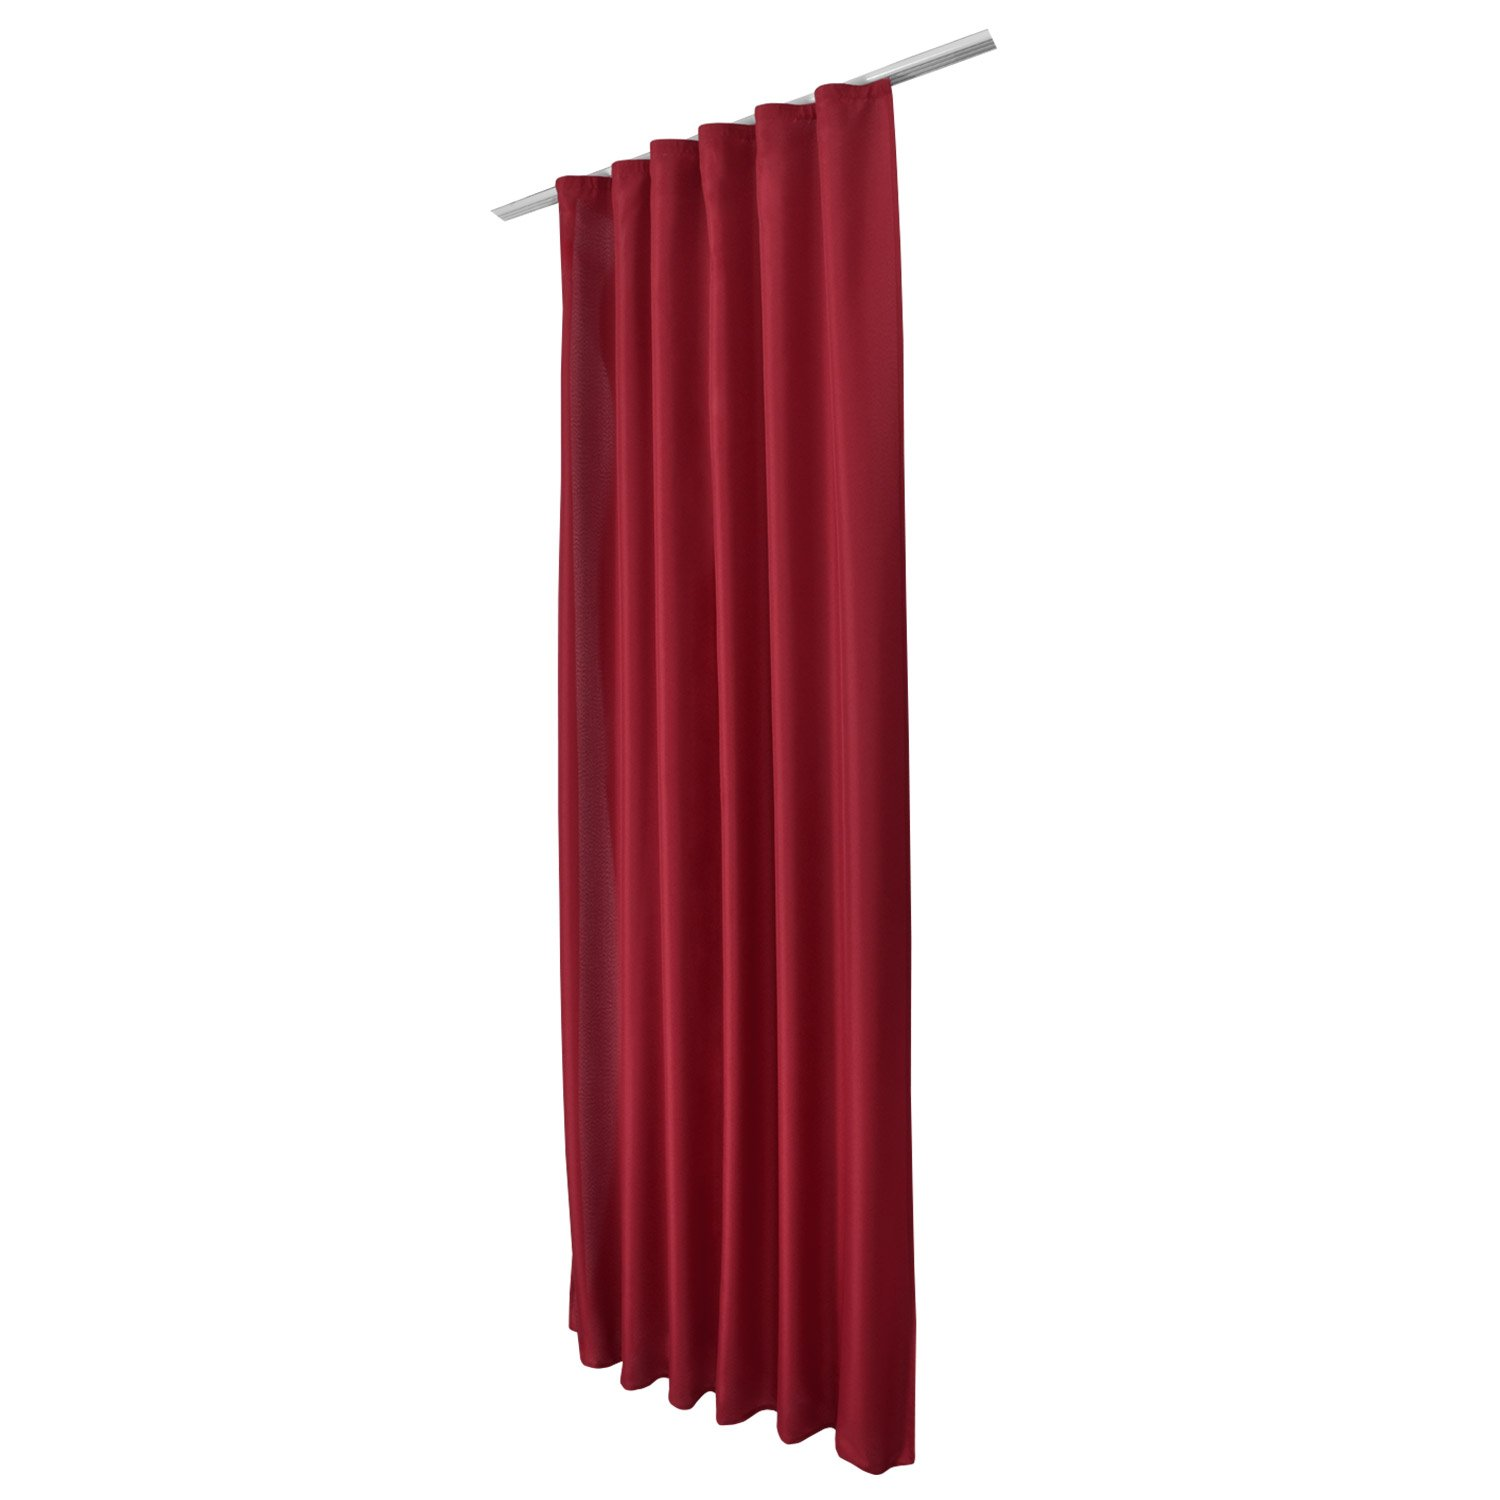 Beautissu Opaque Ribbon-Curtain Amelie 140 cm 175 cm Drop Bordeaux (Red) Decorative Drape with Ribbon